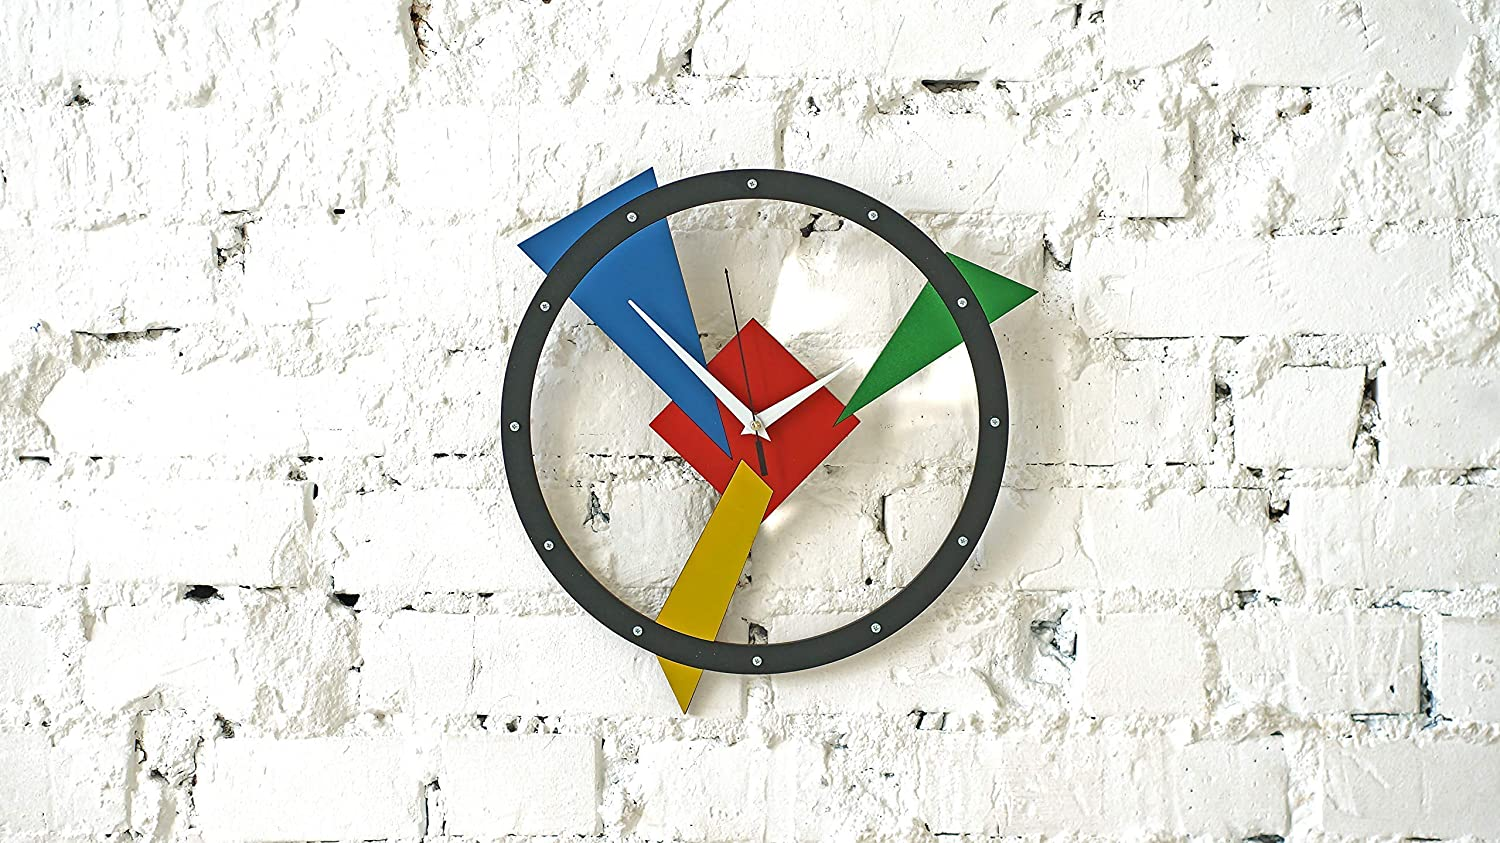 Composition Numero Tre Large Wall Clock Handcrafted perspective illusion abstract modern contemporary art style unique interior design room office decoration personalized custom made Gift